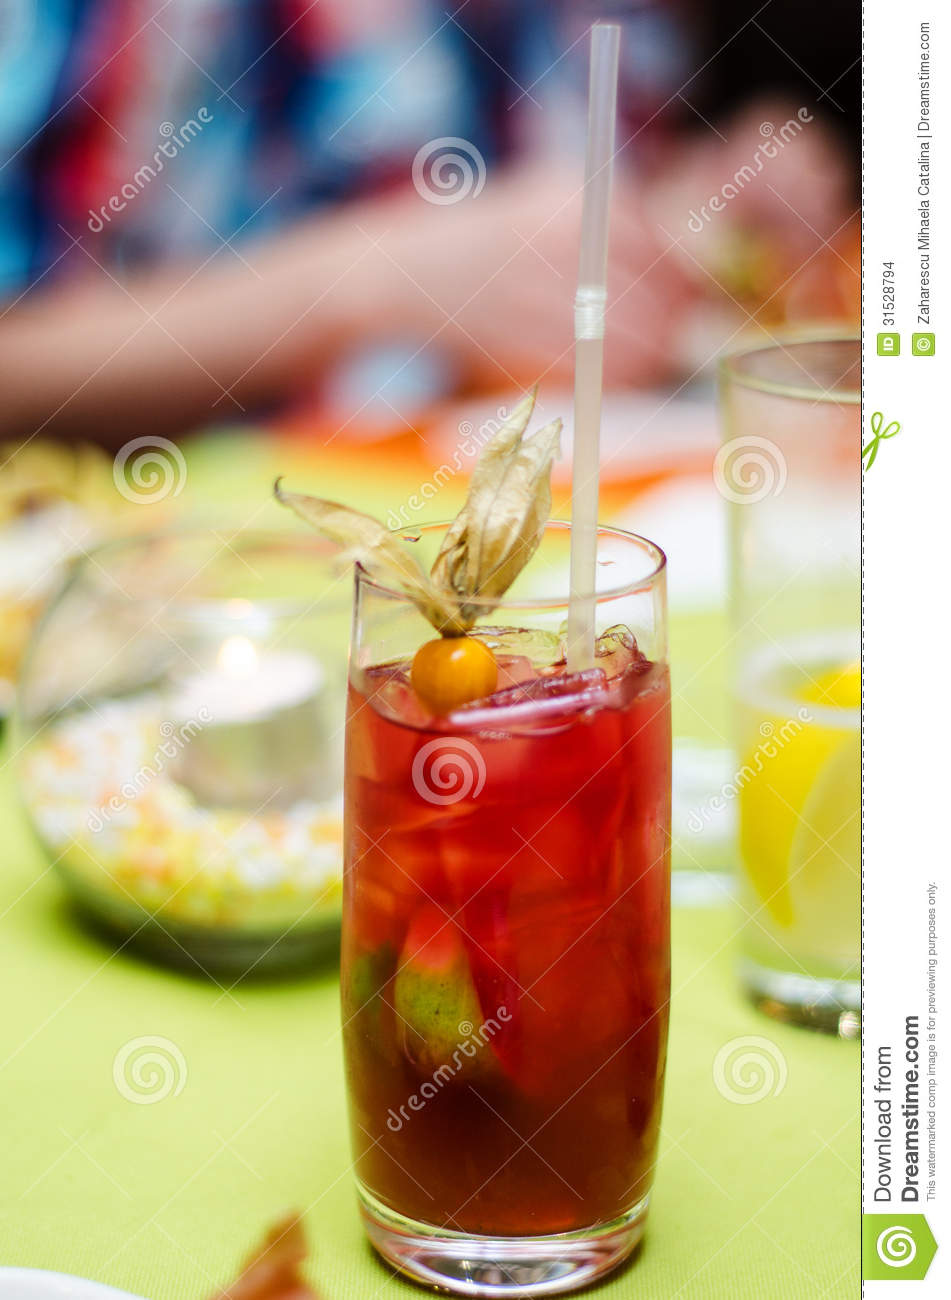 Fruits Non Alcoholic Cocktail Stock Images - Image: 31528794